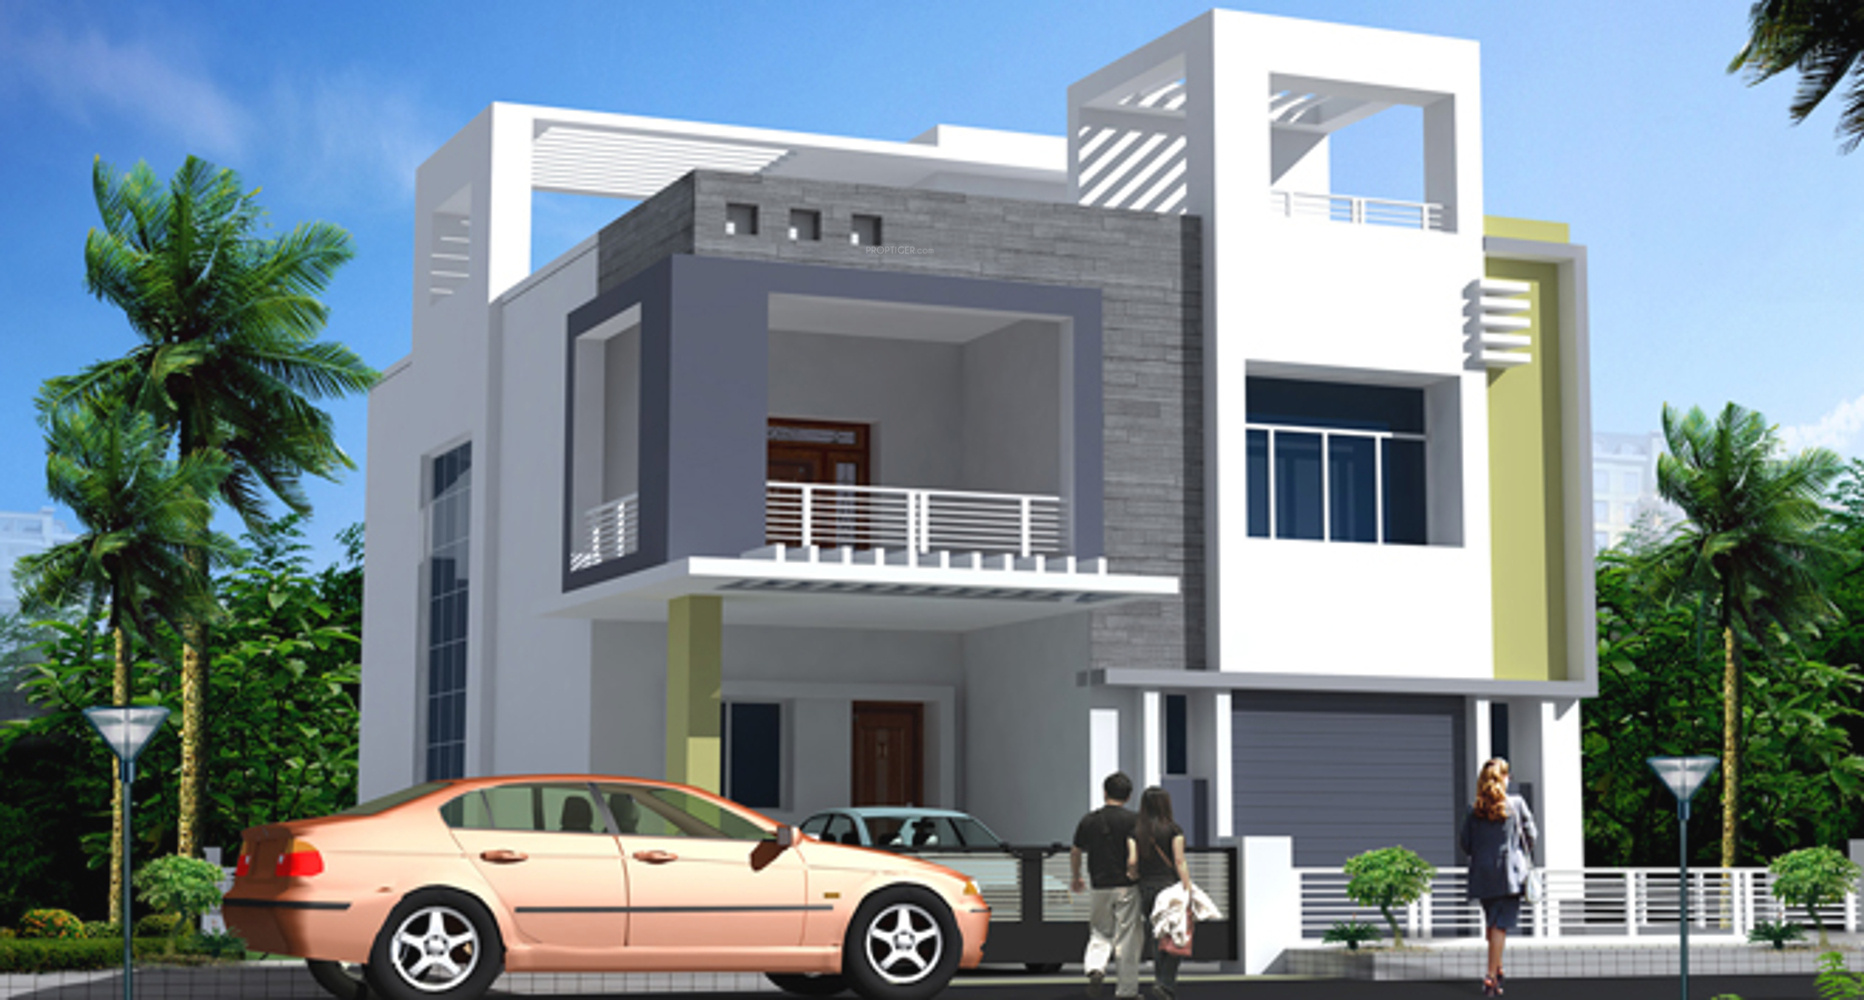 Elevation Of Double Storey Building : Main elevation image of saket swarna villas unit